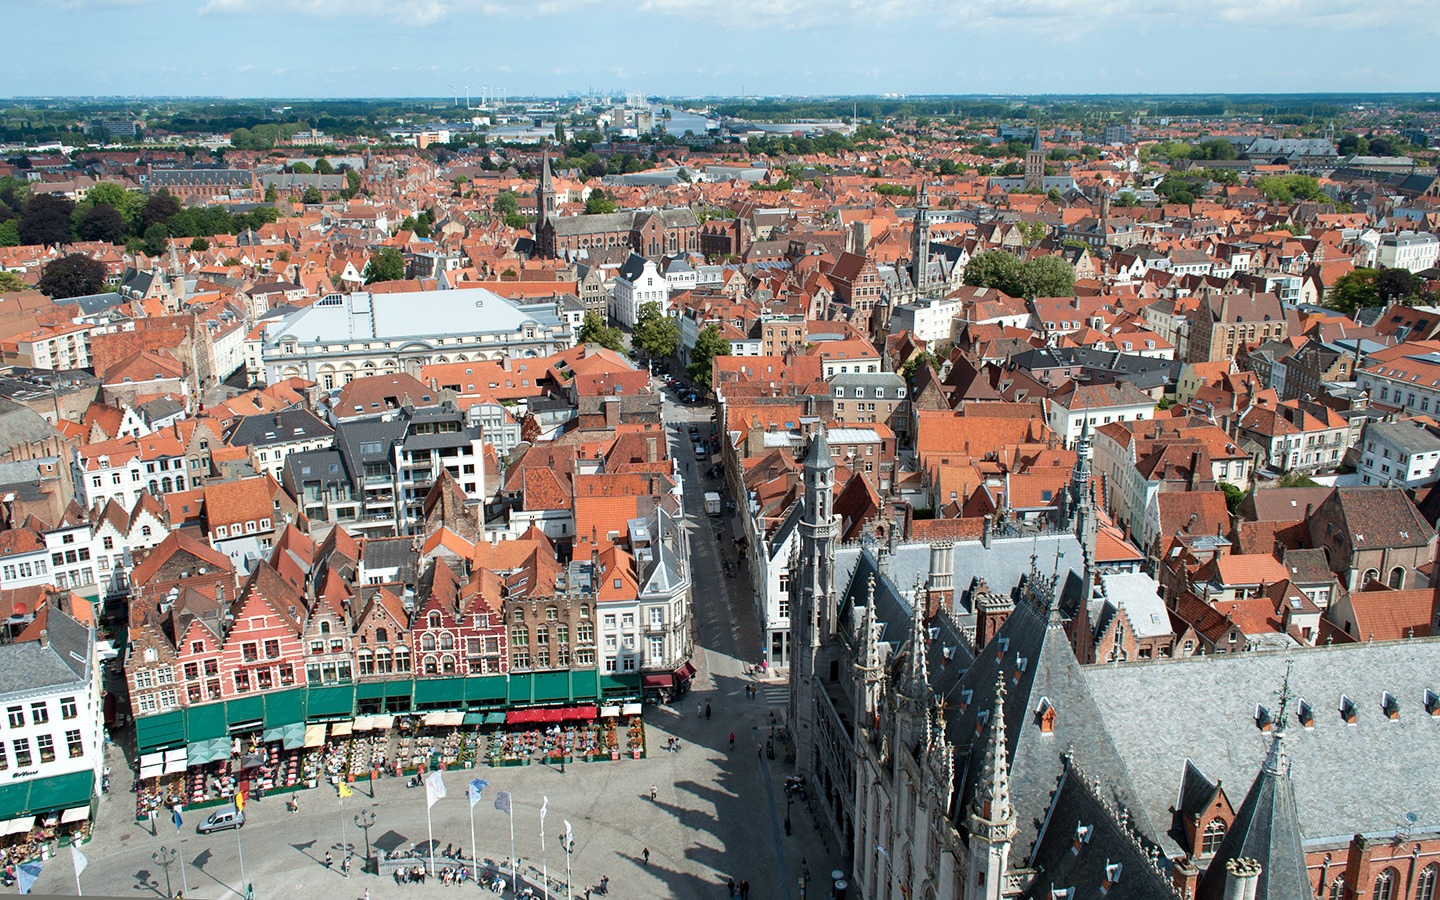 Views over Bruges from the top of th Belfort tower